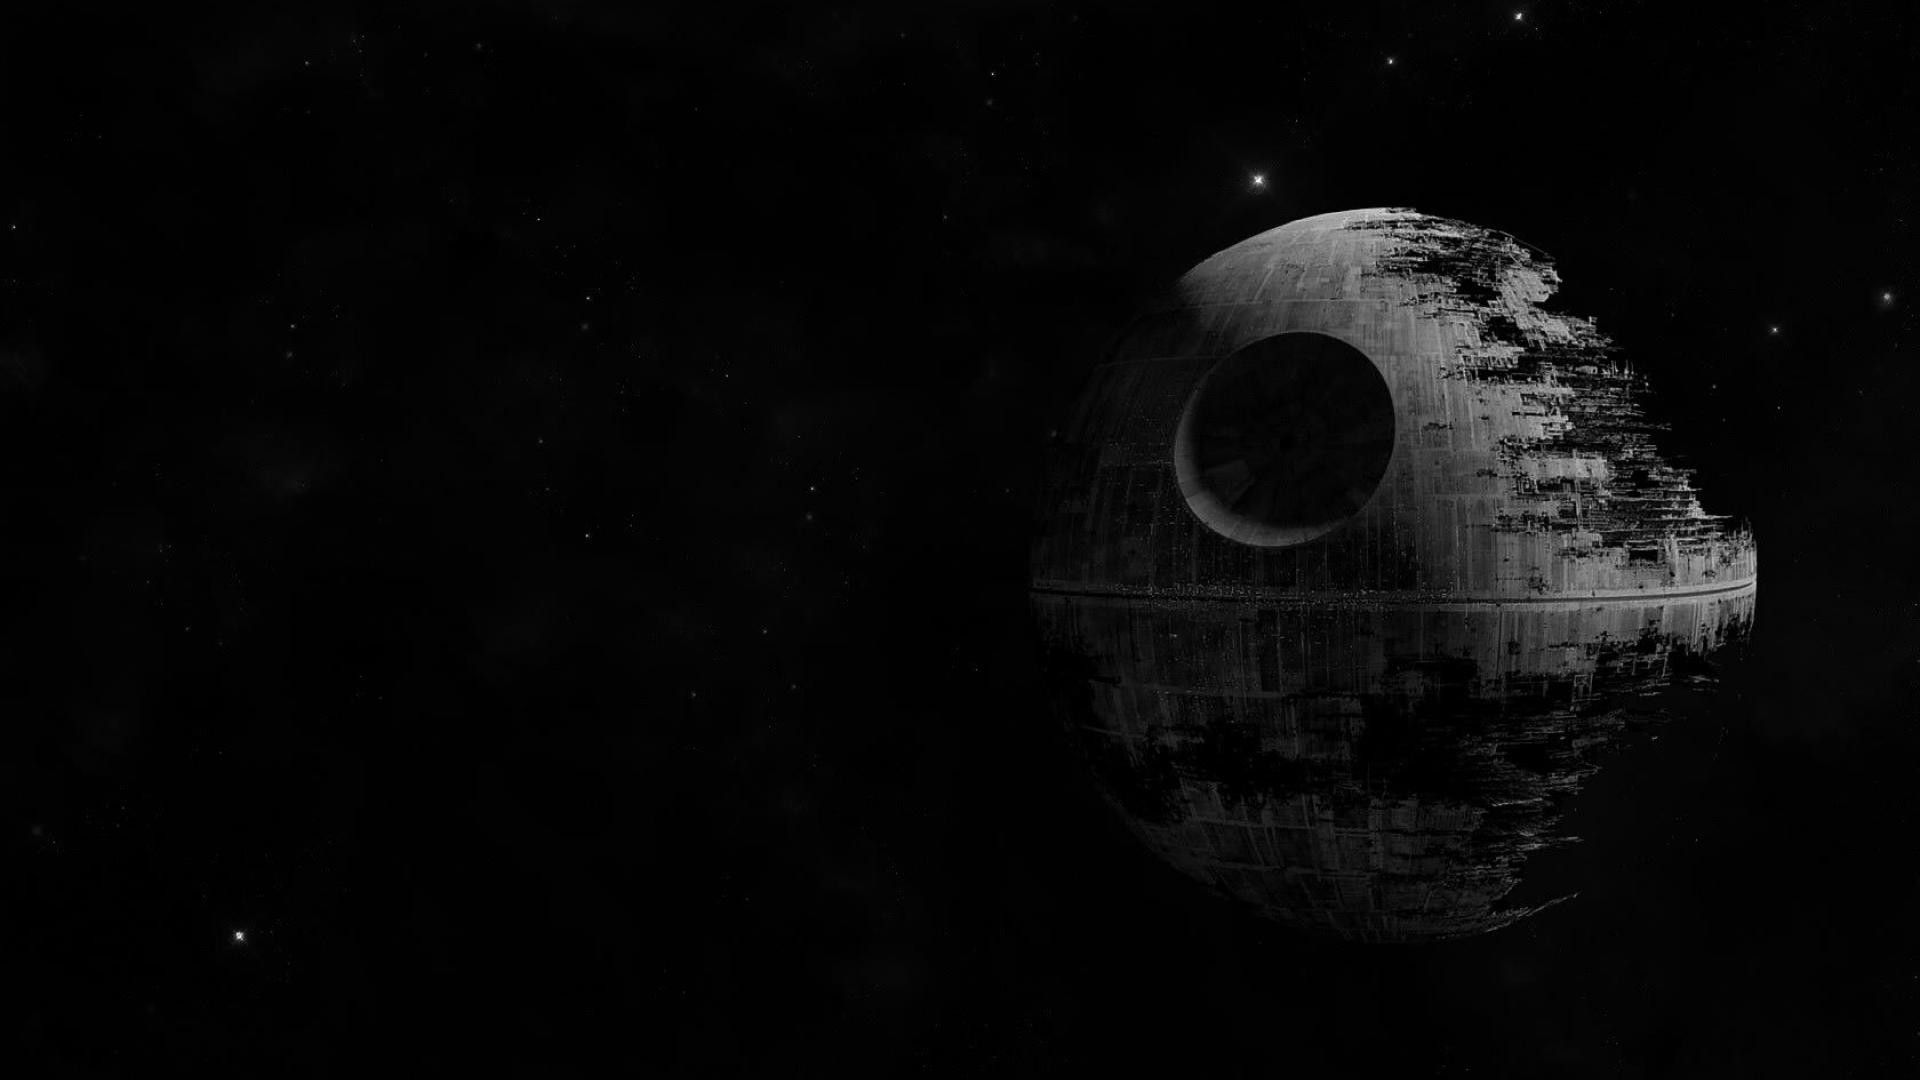 download free Star Wars Background Wallpaper 1920x1080 for